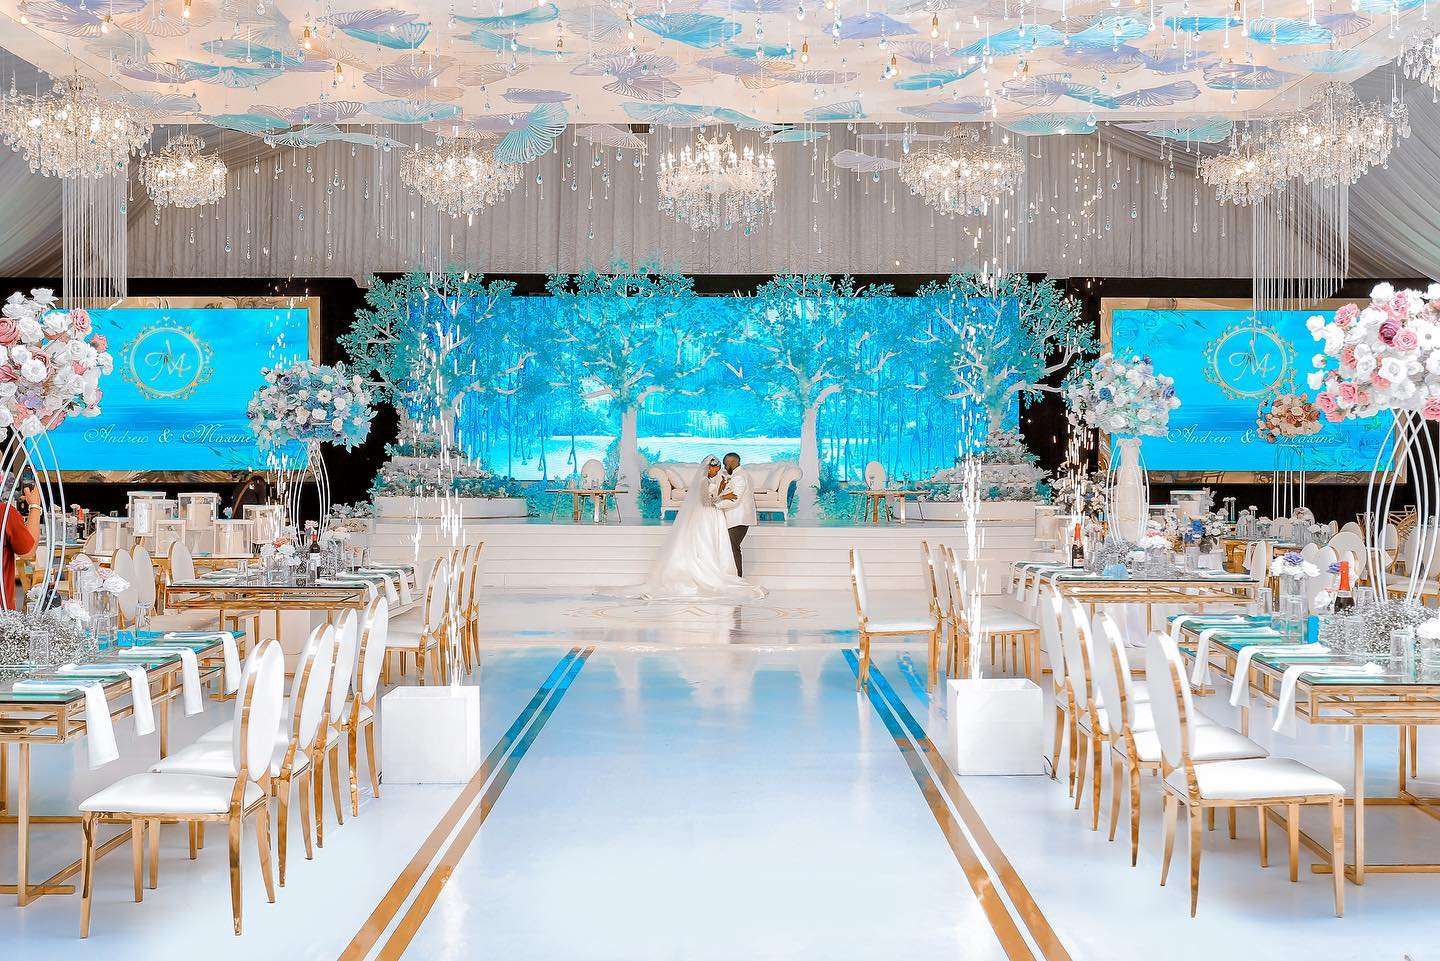 Andrew and Maxine's wedding by iCandy at Mestil hotel for wedding venue, Dalausi juice, Fenon records